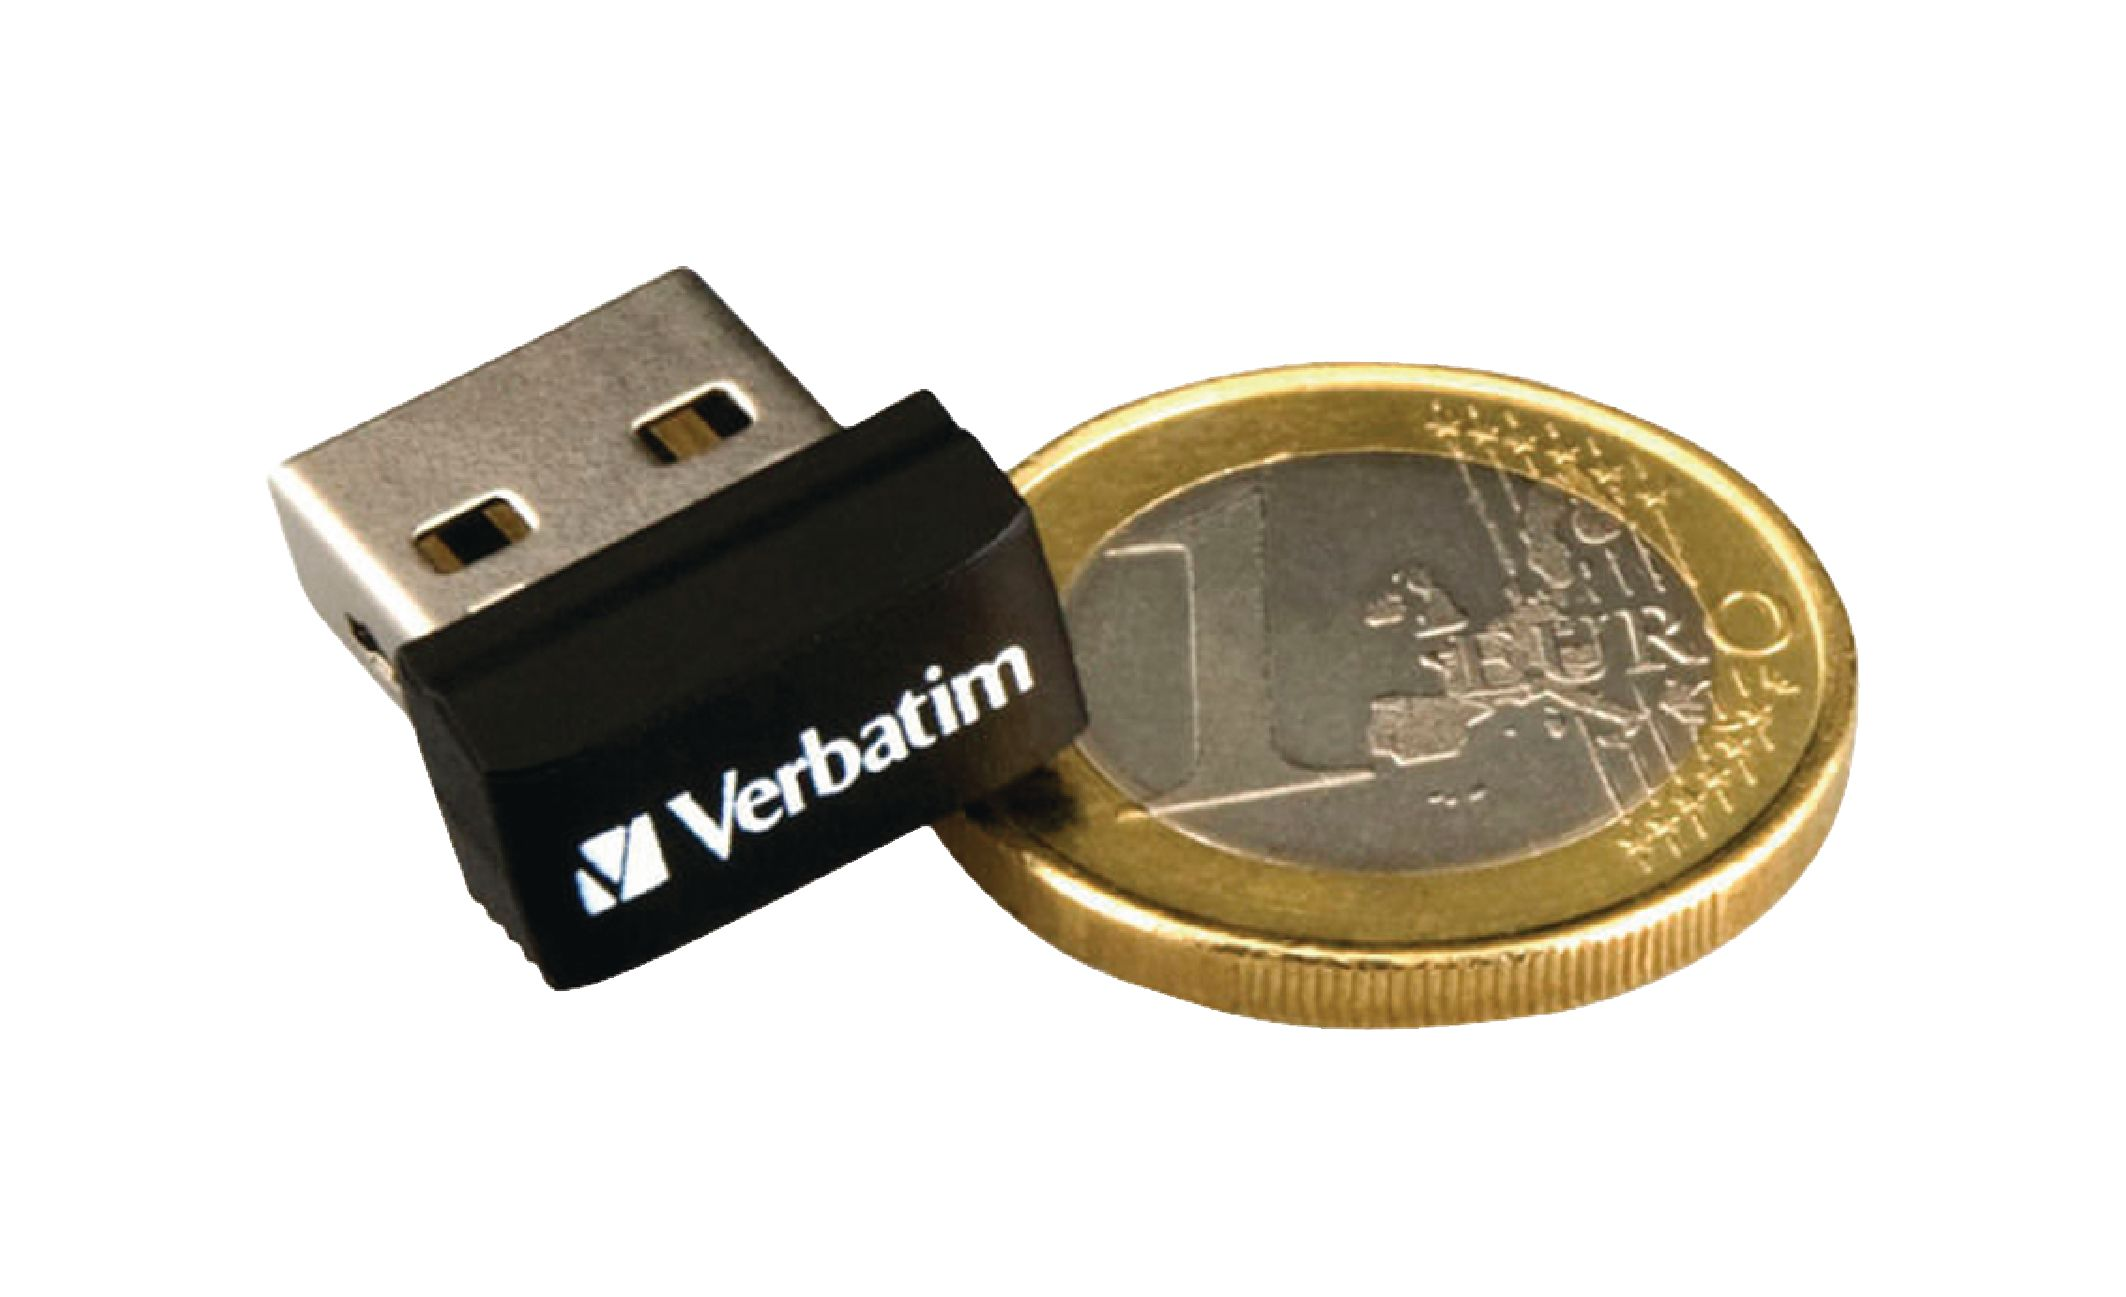 Vebatim nano flash disk USB 2.0 16 GB